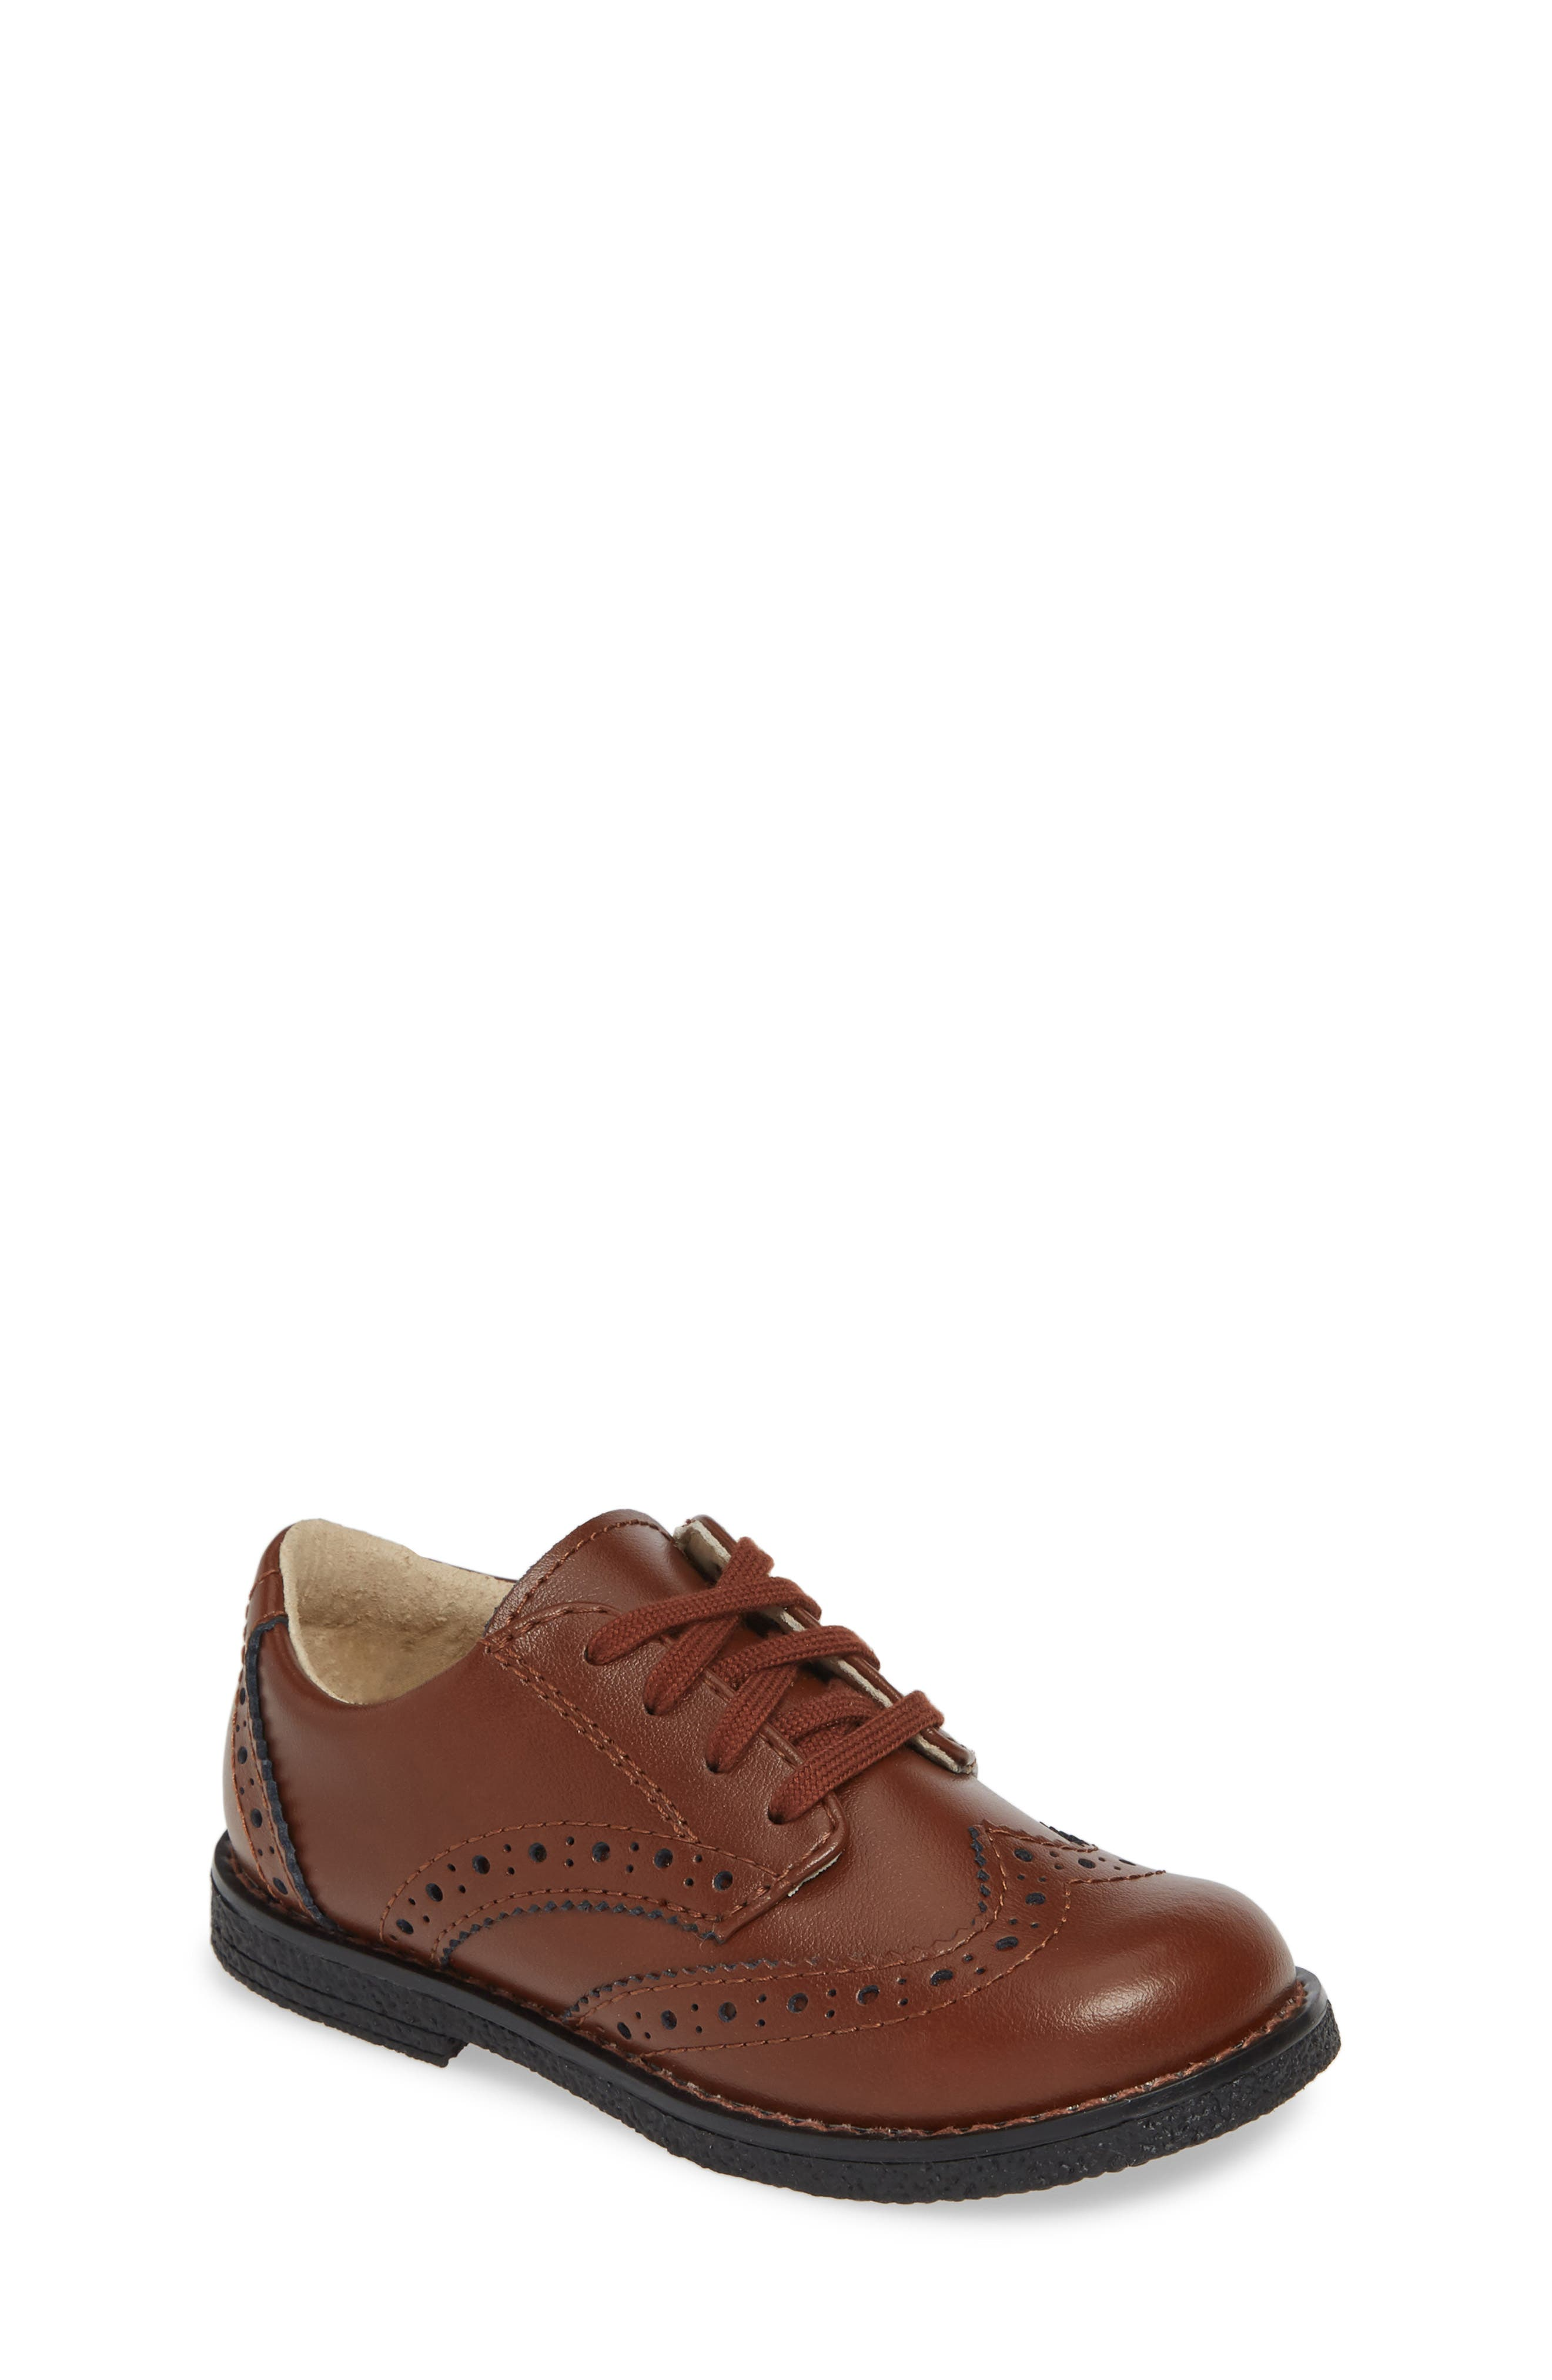 A burnished leather oxford with classic broguing features a cushioned insole that will keep him comfortable with every step he takes. Style Name: Footmates Logan Oxford (Walker, Toddler & Little Kid). Style Number: 5793584. Available in stores.